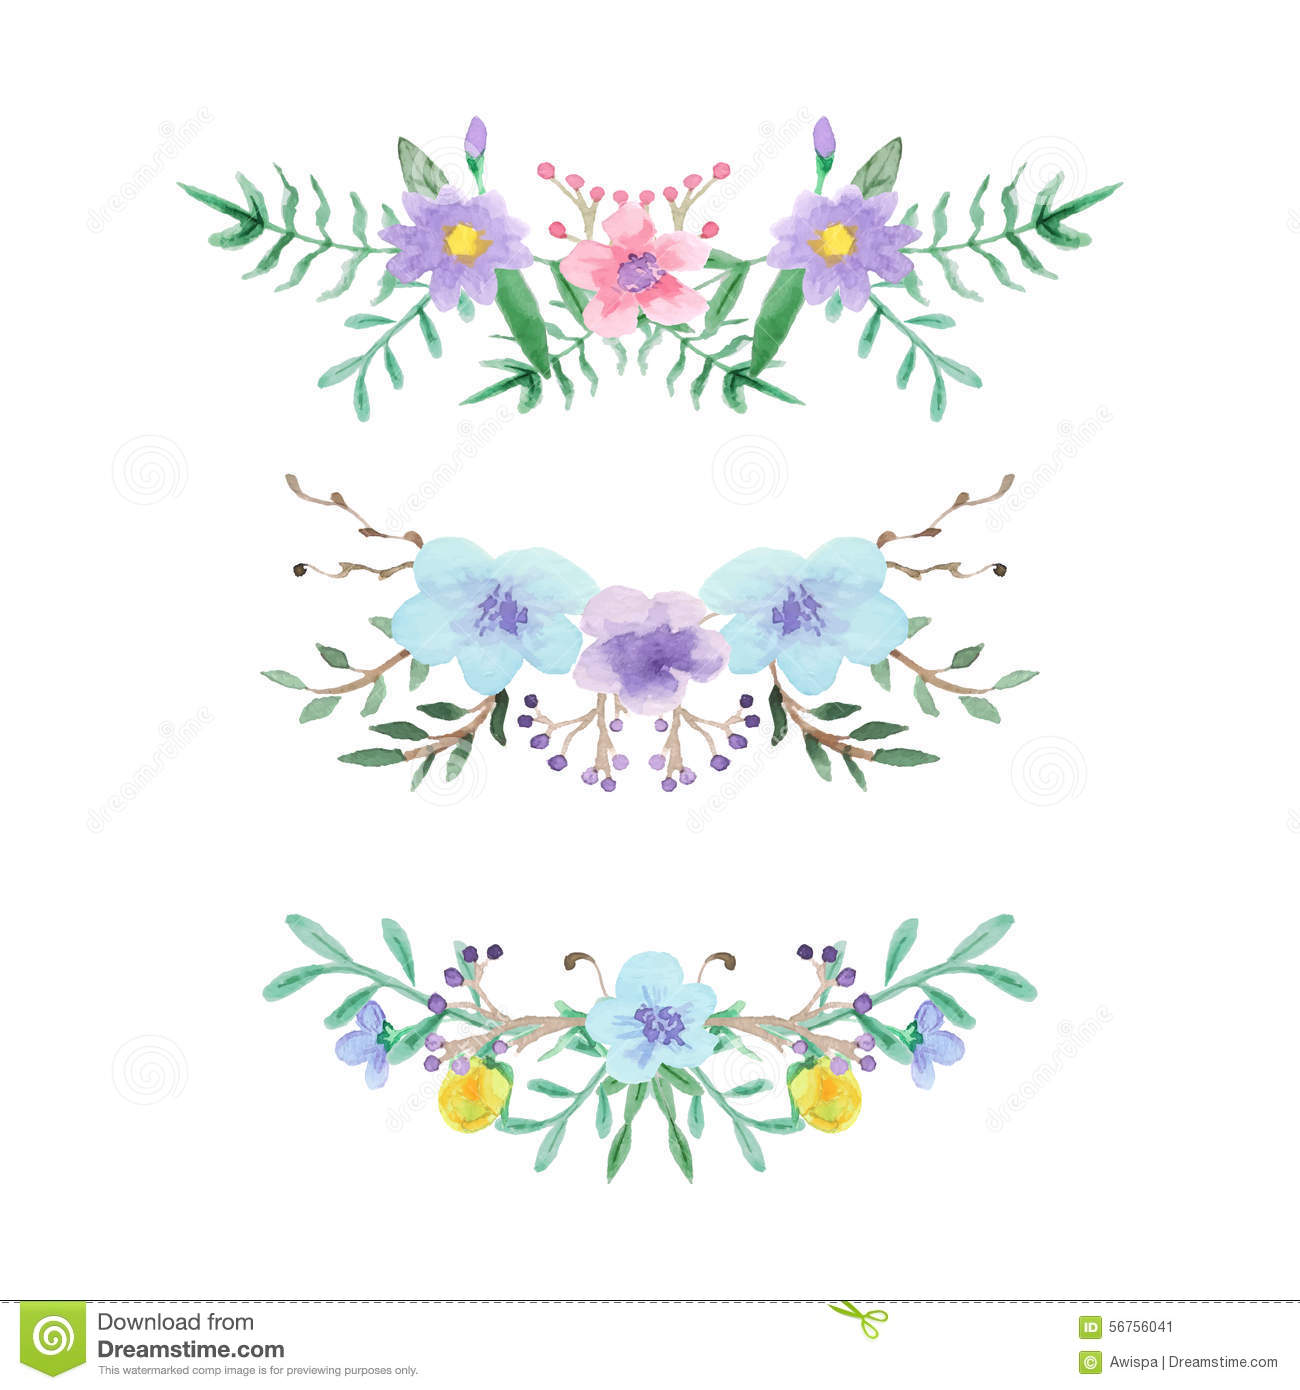 Watercolor Floral Border Set Stock Vector - Image: 56756041